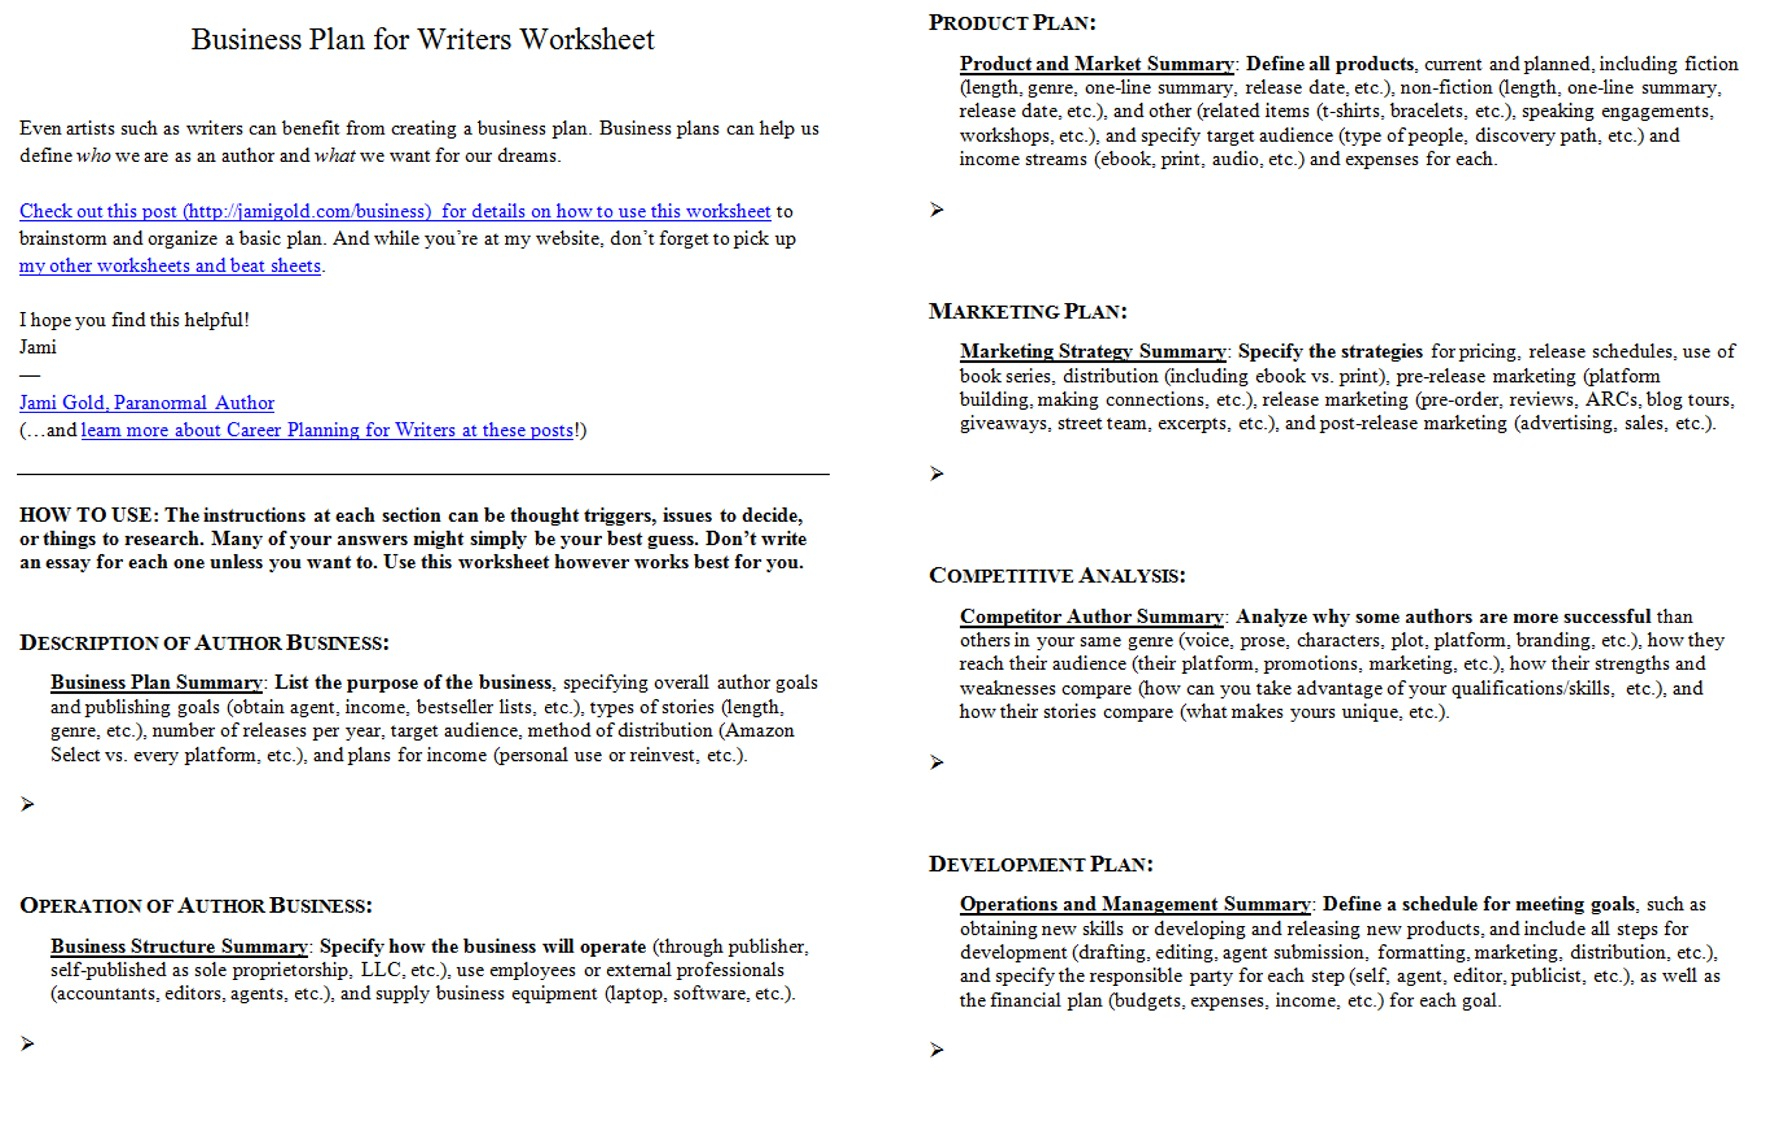 Weirdmailus  Sweet Worksheets For Writers  Jami Gold Paranormal Author With Fascinating Screen Shot Of Both Pages Of The Business Plan For Writers Worksheet With Divine Worksheets On Logarithms Also Interpersonal Skills Worksheet In Addition Year  Math Worksheets And Noun Worksheet For Nd Grade As Well As Giving Direction Worksheet Additionally Year  Maths Worksheets From Jamigoldcom With Weirdmailus  Fascinating Worksheets For Writers  Jami Gold Paranormal Author With Divine Screen Shot Of Both Pages Of The Business Plan For Writers Worksheet And Sweet Worksheets On Logarithms Also Interpersonal Skills Worksheet In Addition Year  Math Worksheets From Jamigoldcom